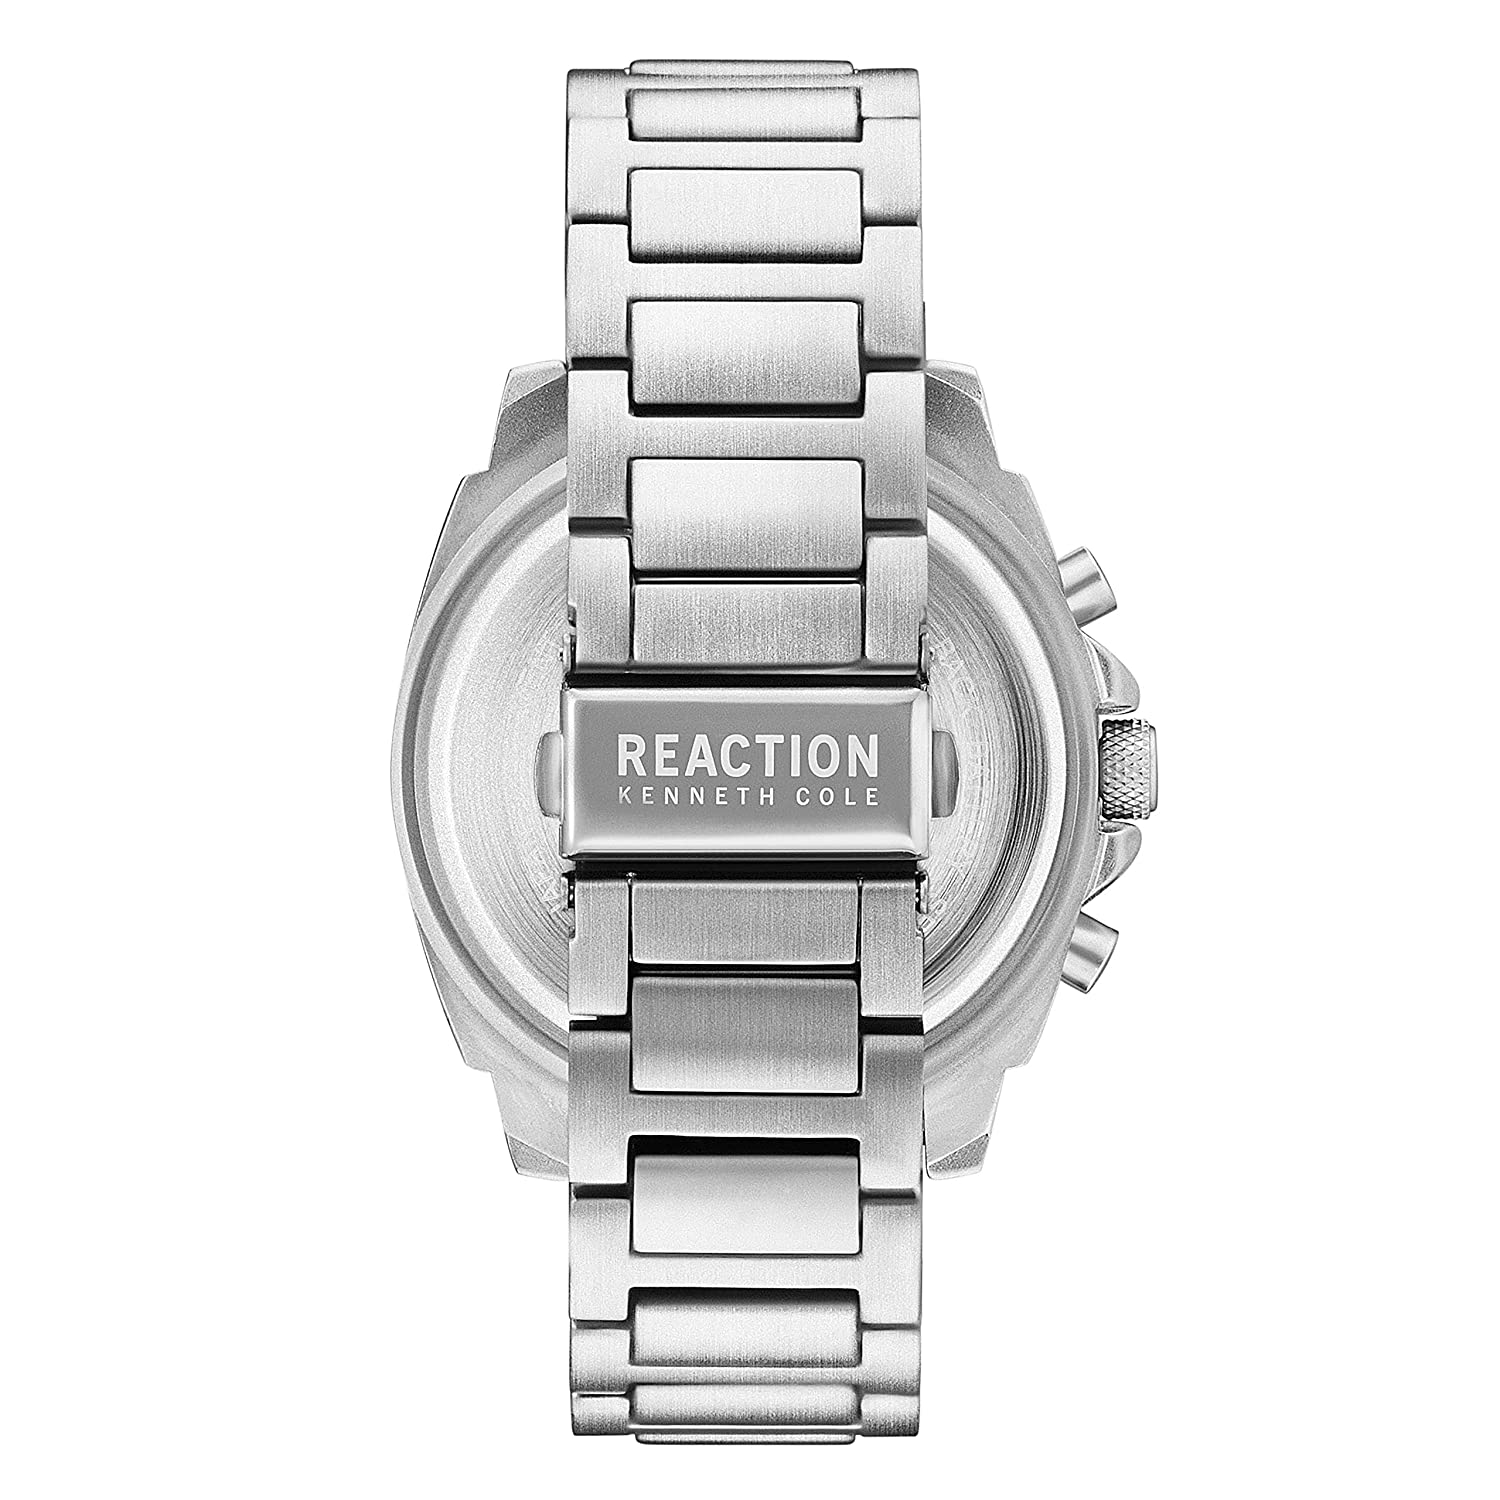 Amazon.com: Kenneth Cole REACTION Mens Sport Analog-Quartz Watch with Stainless-Steel Strap, Silver, 23 (Model: 10031947: Watches